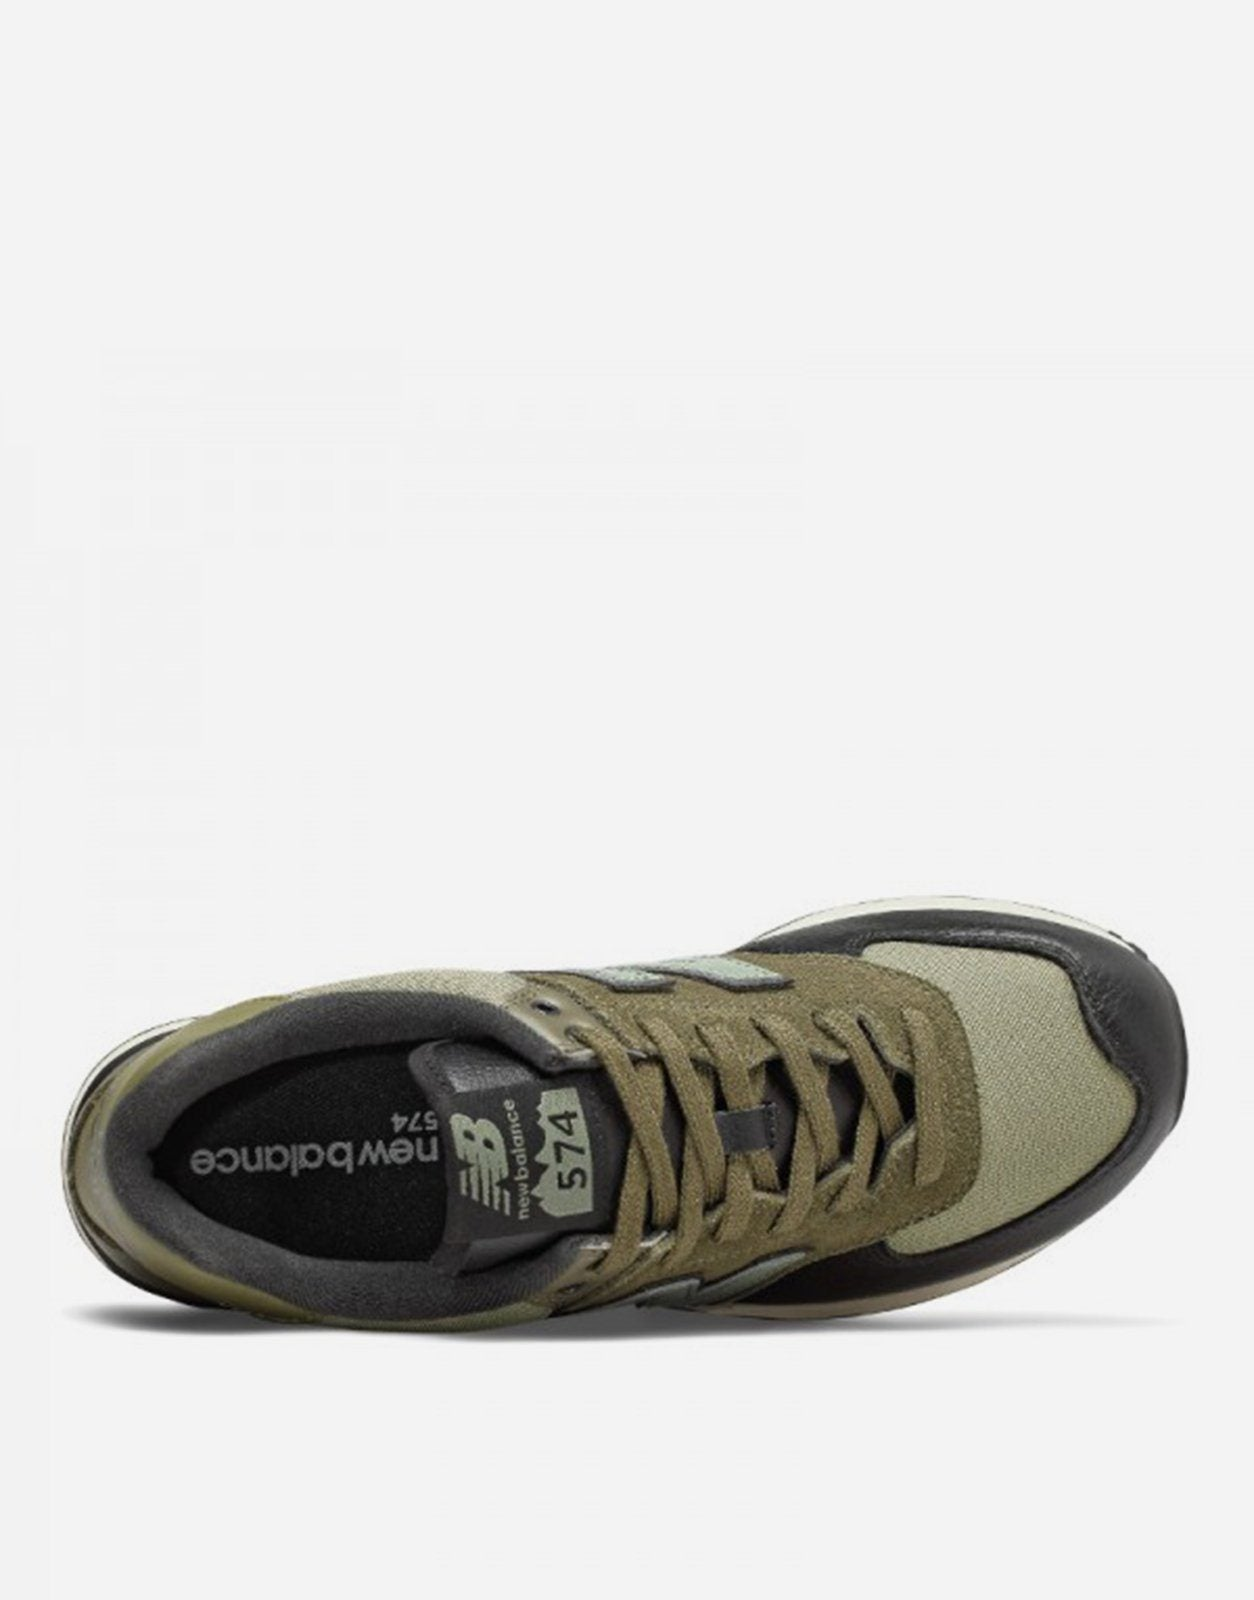 brand new ccb12 316b7 New Balance 574 Classic Outdoor Pack Sneaker